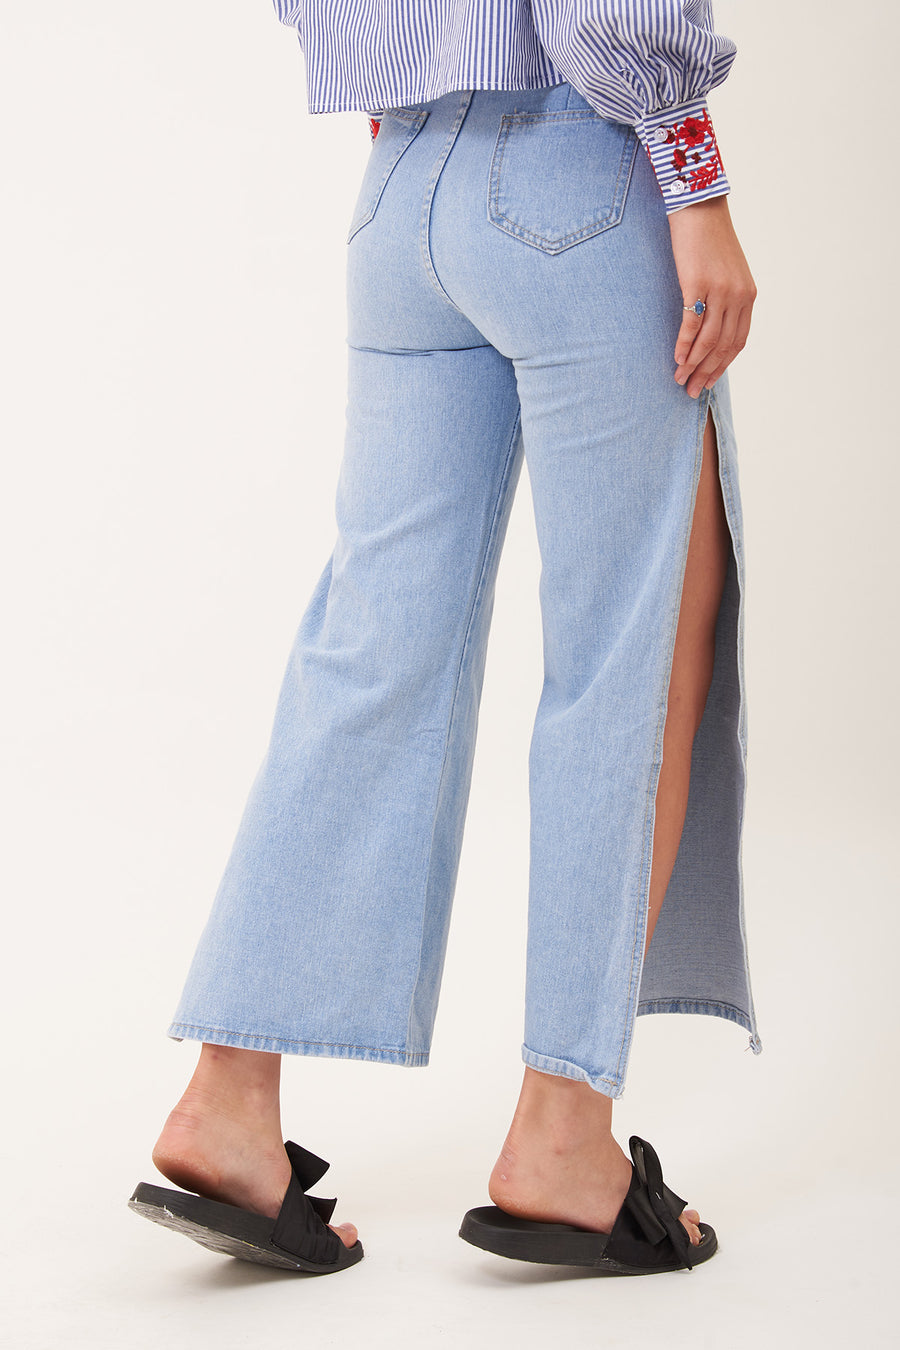 JEANS WITH SIDE SLITS